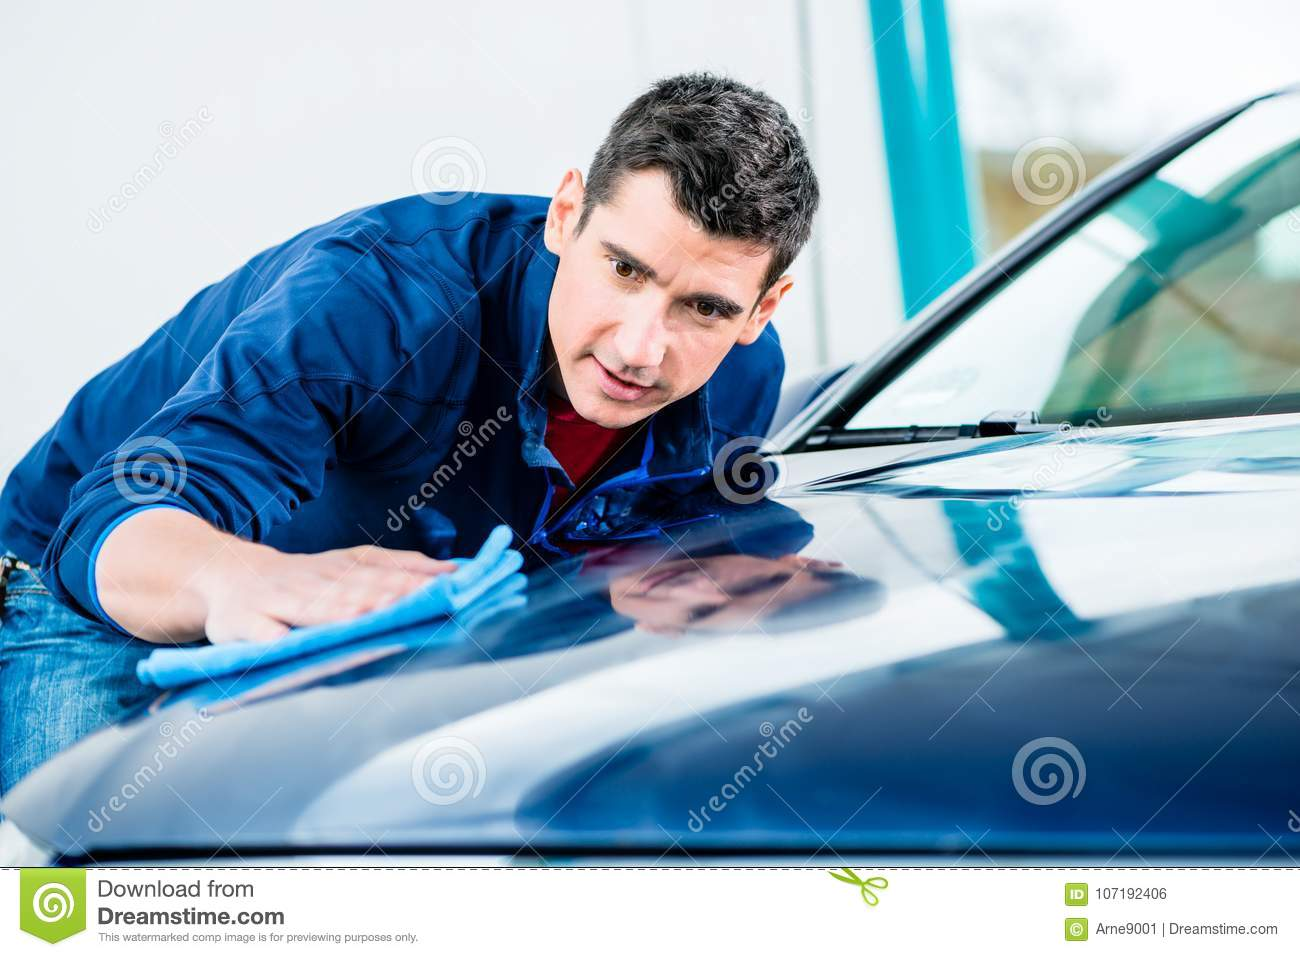 Man using an absorbent towel for drying the surface of a car